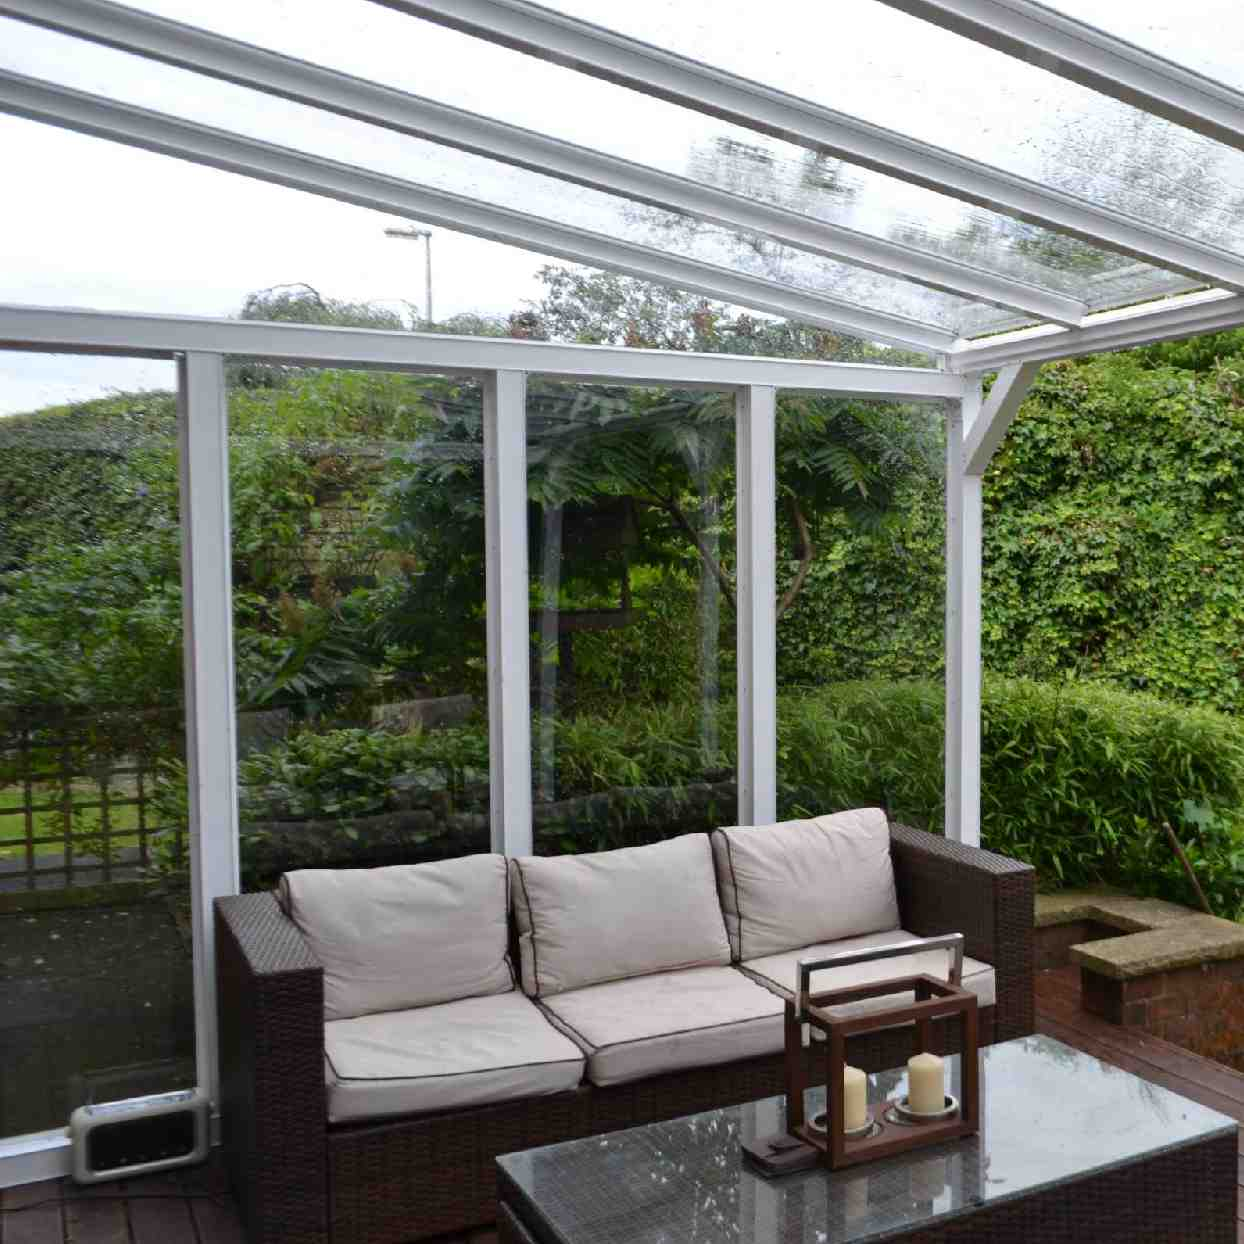 Buy Omega Verandah with 16mm Polycarbonate Glazing - 3.5m (W) x 4.0m (P), (3) Supporting Posts online today